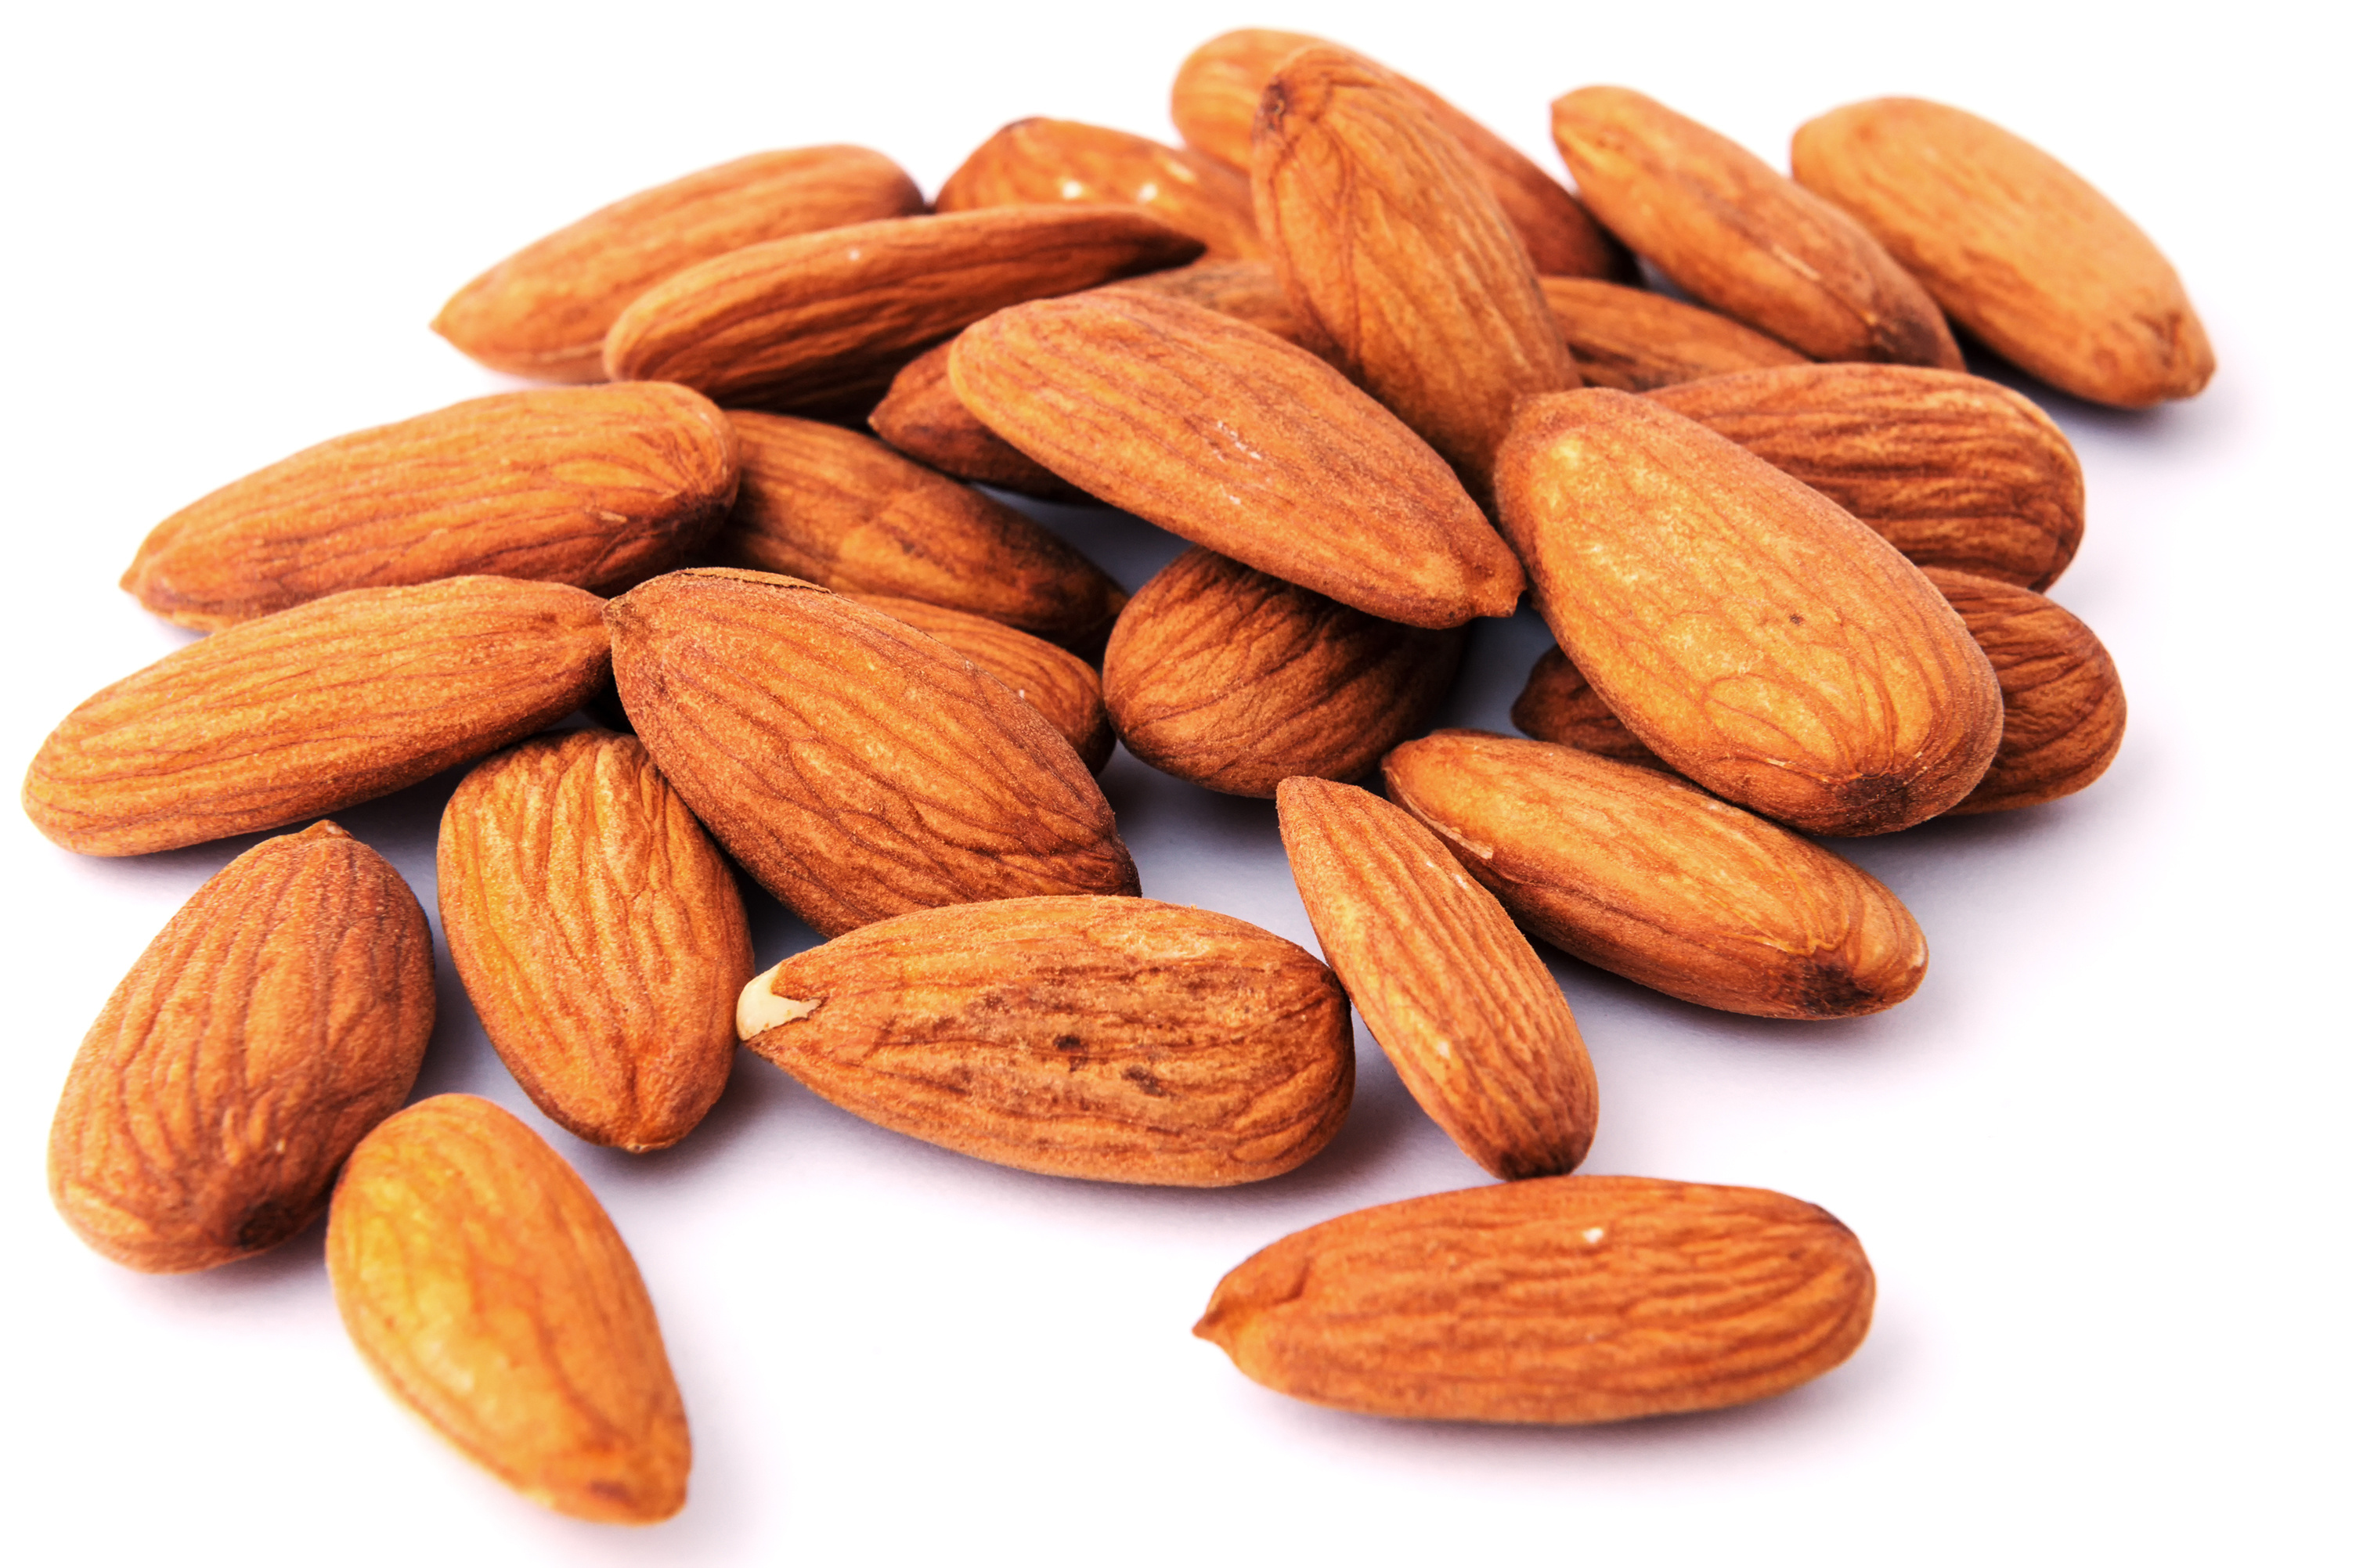 Badaam (Almonds). Photo: Mivr / Dollar Photo Club